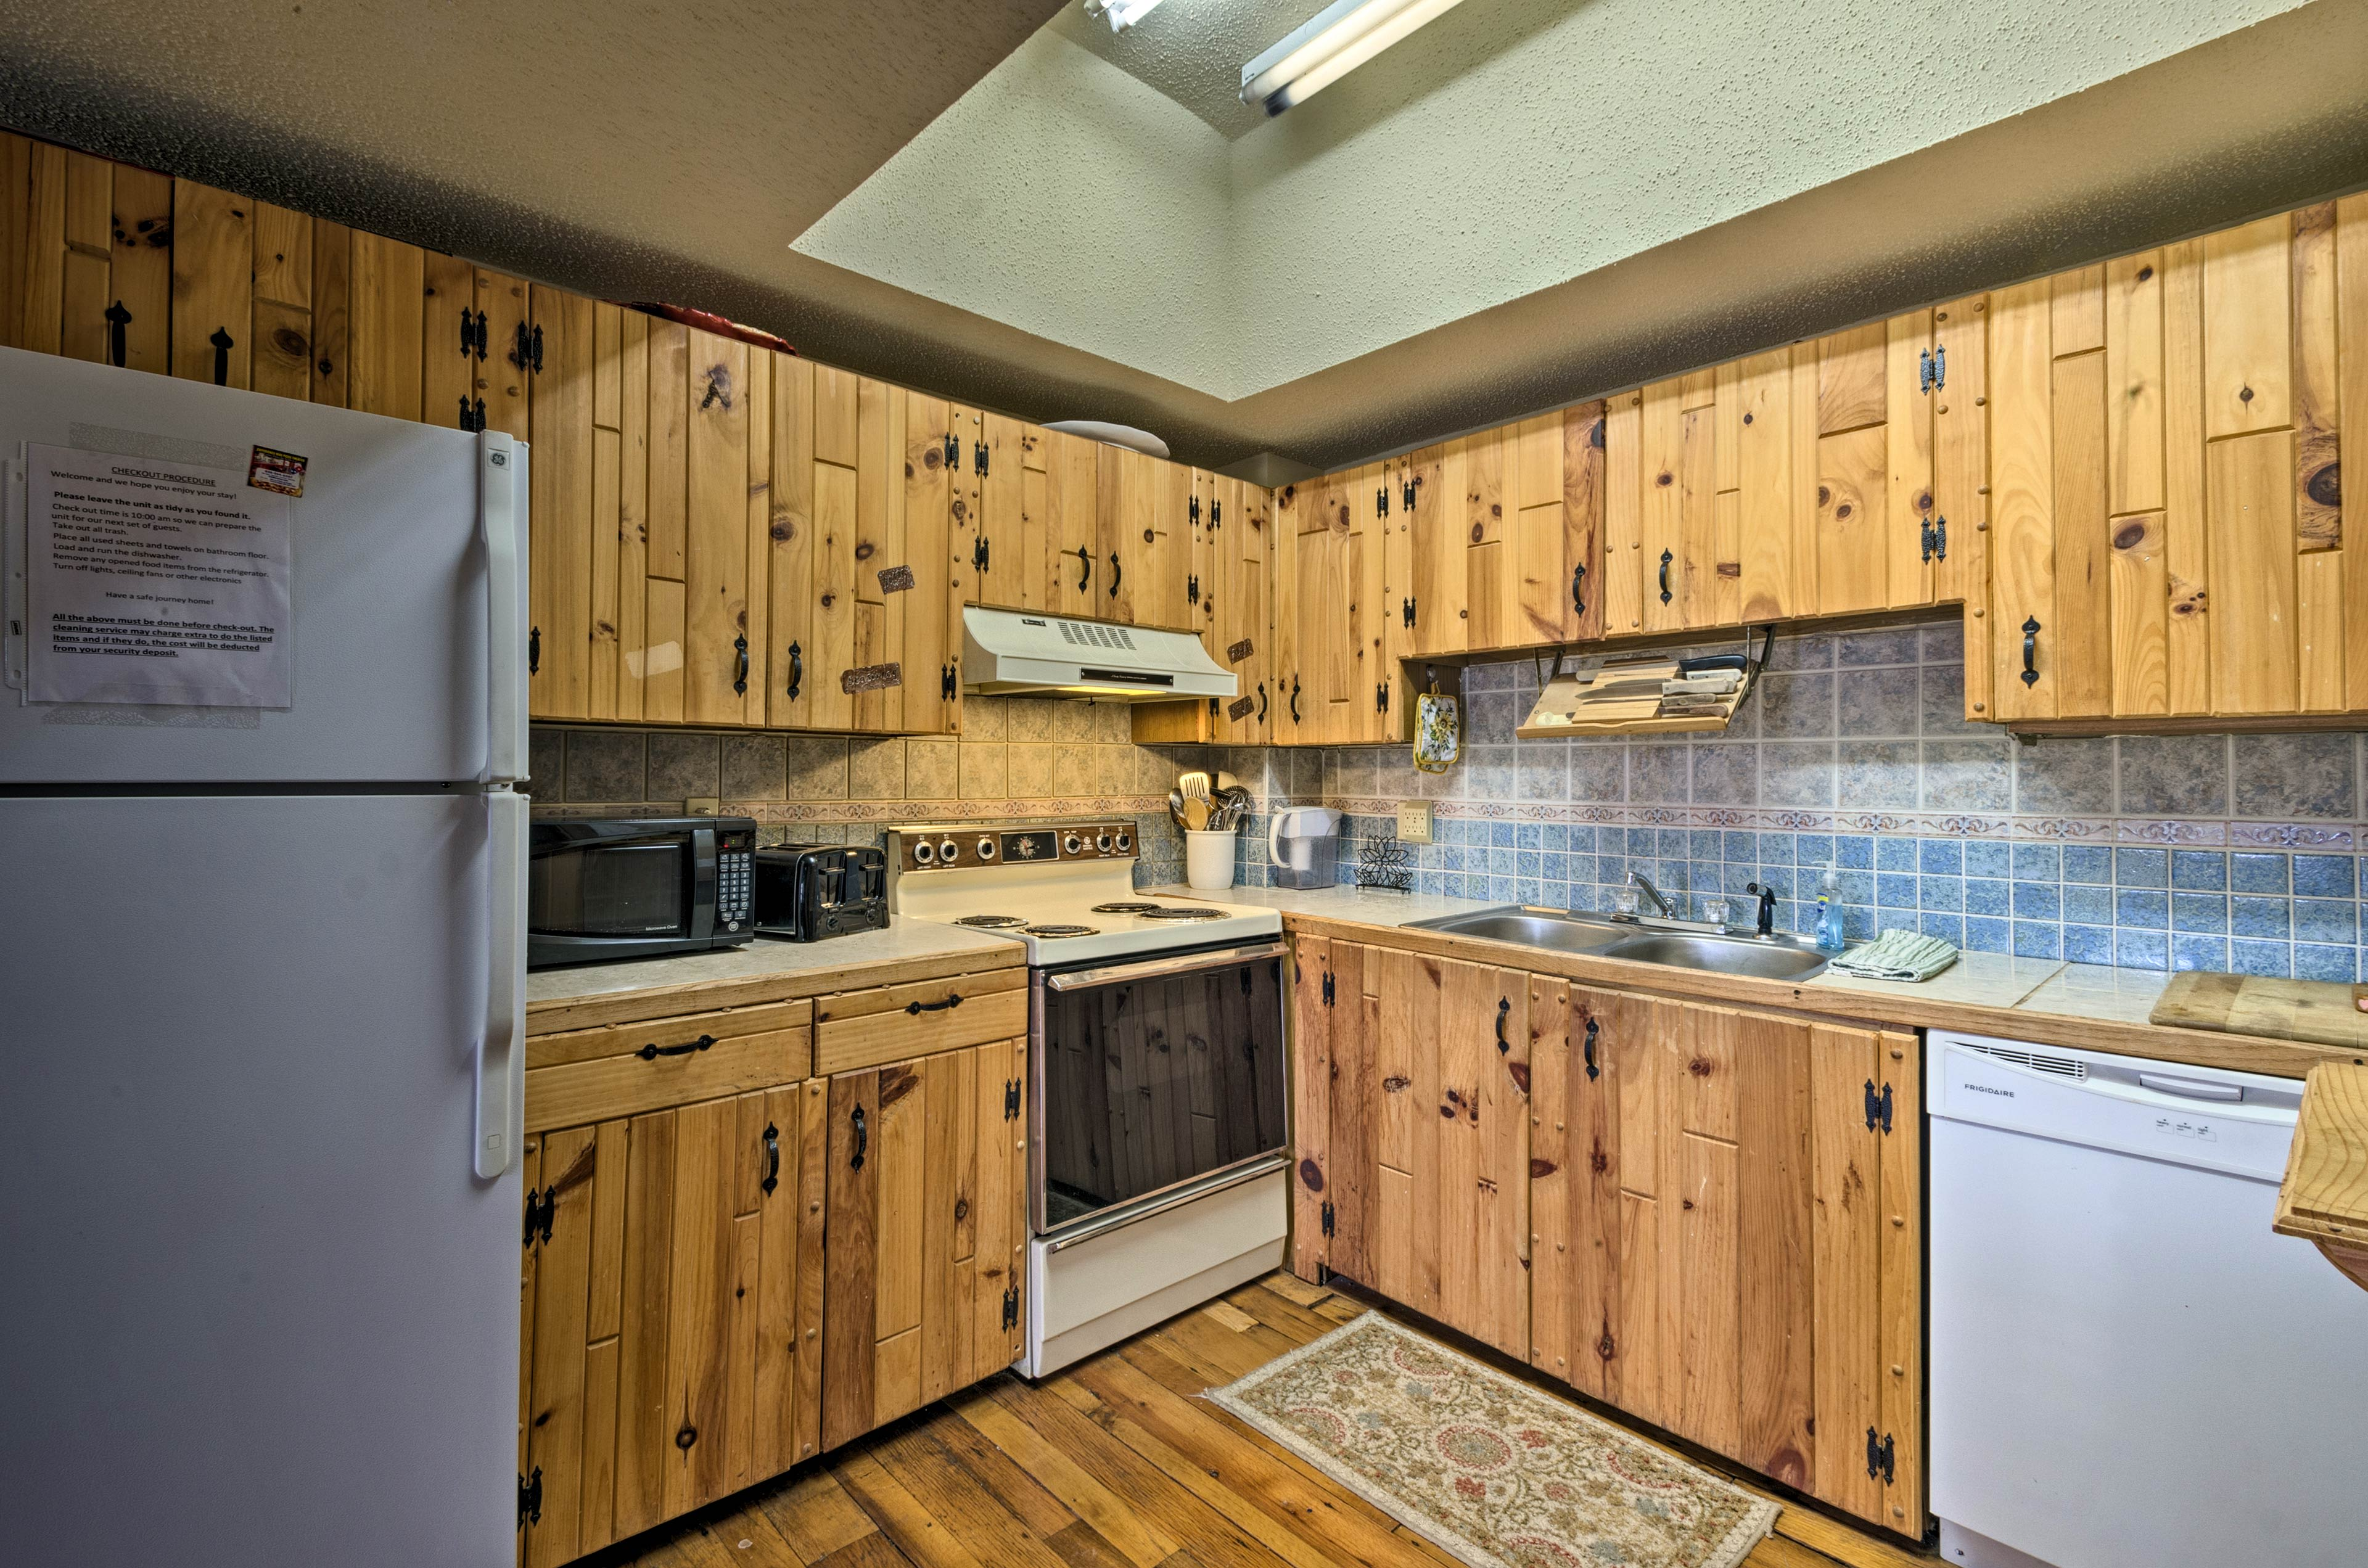 There's plenty of cabinetry to store your dry goods in!